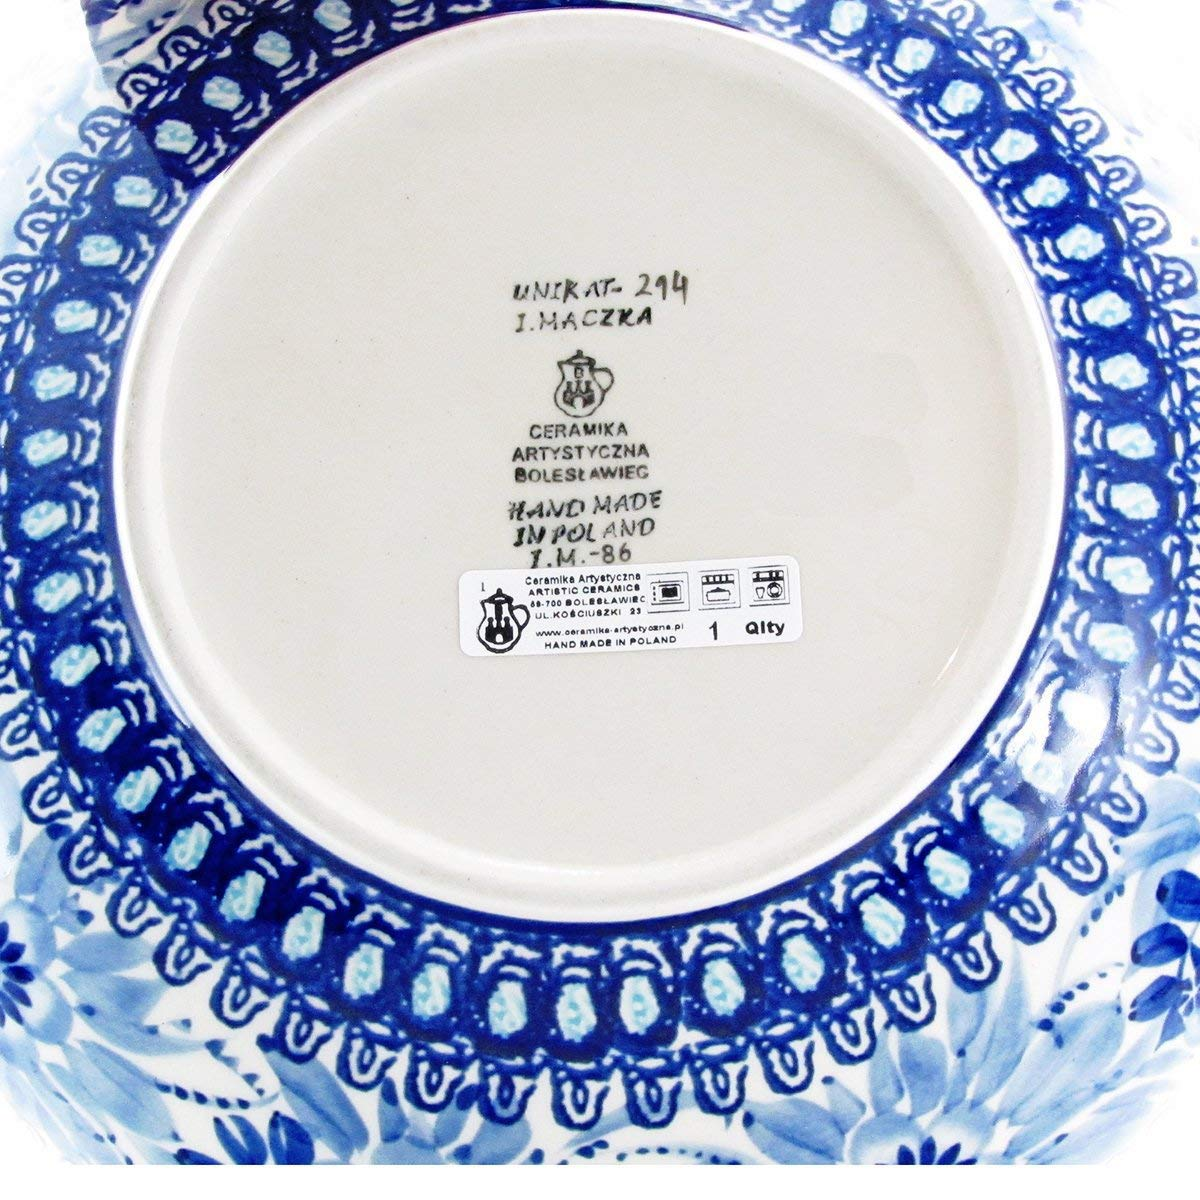 Polish Pottery Handmade Vintage Unikat 10.5'' 2 QT SERVING BOWL - U214 by Great2bHome Polish Pottery and Unique Gifts (Image #4)